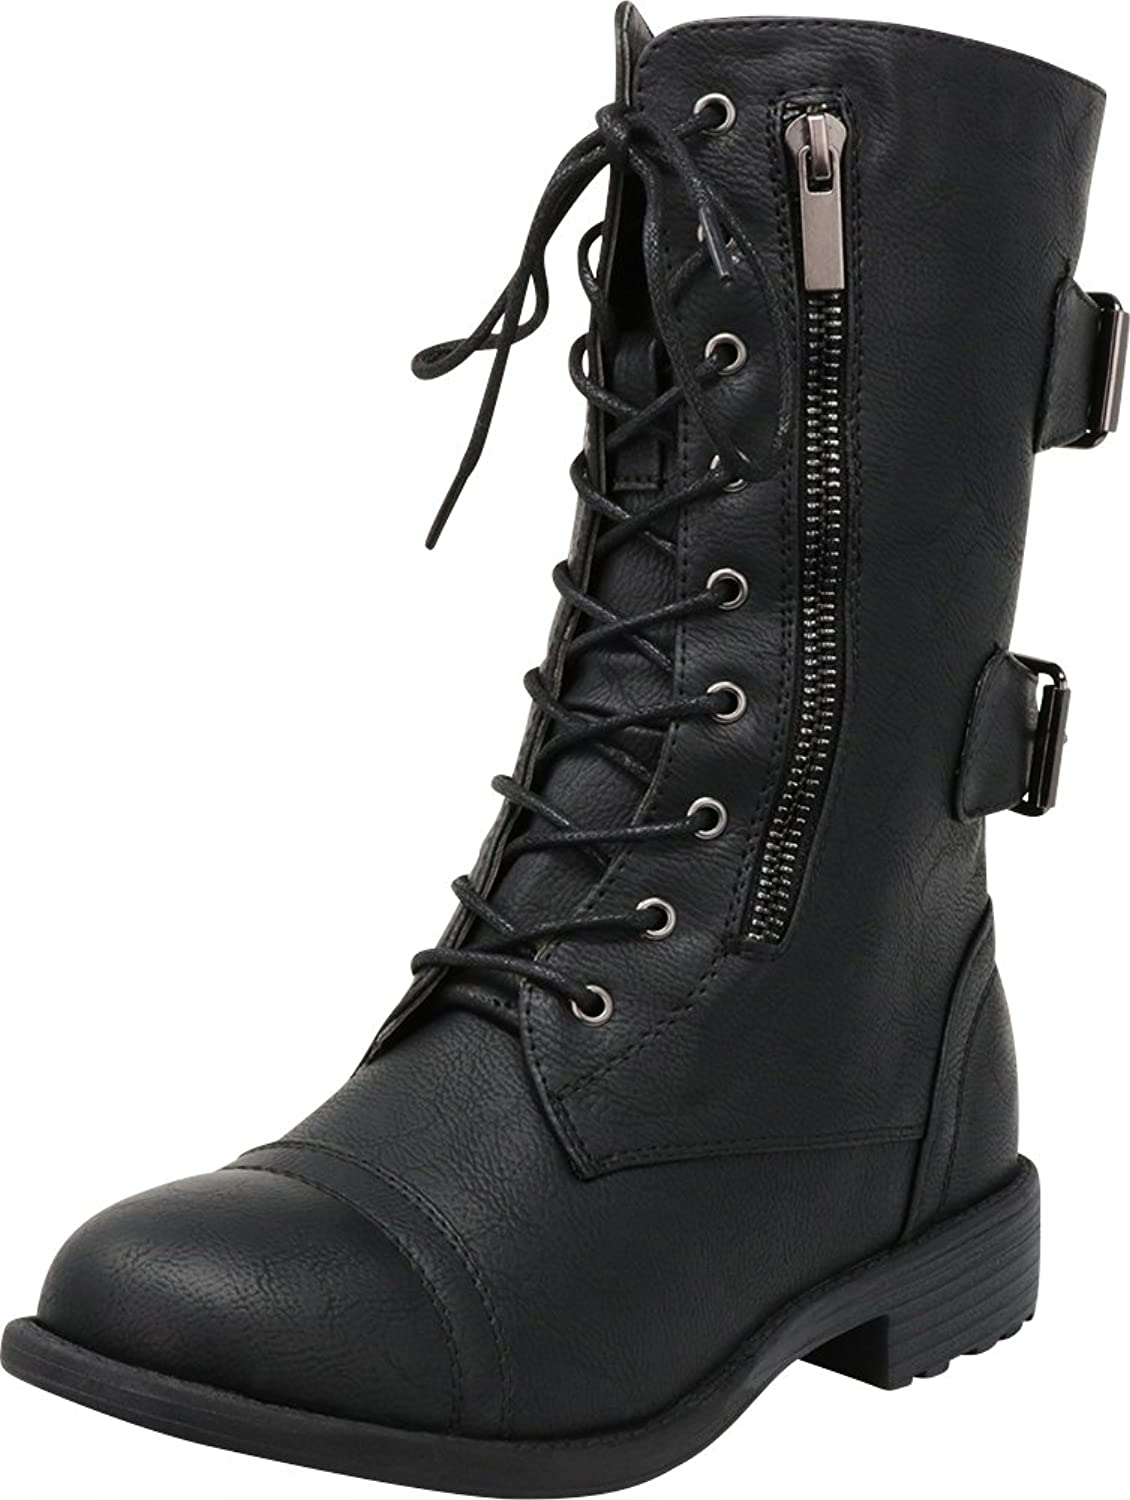 Cambridge Select Women's Closed Round Toe Lace-up Chunky Low Heel Moto Combat Boot